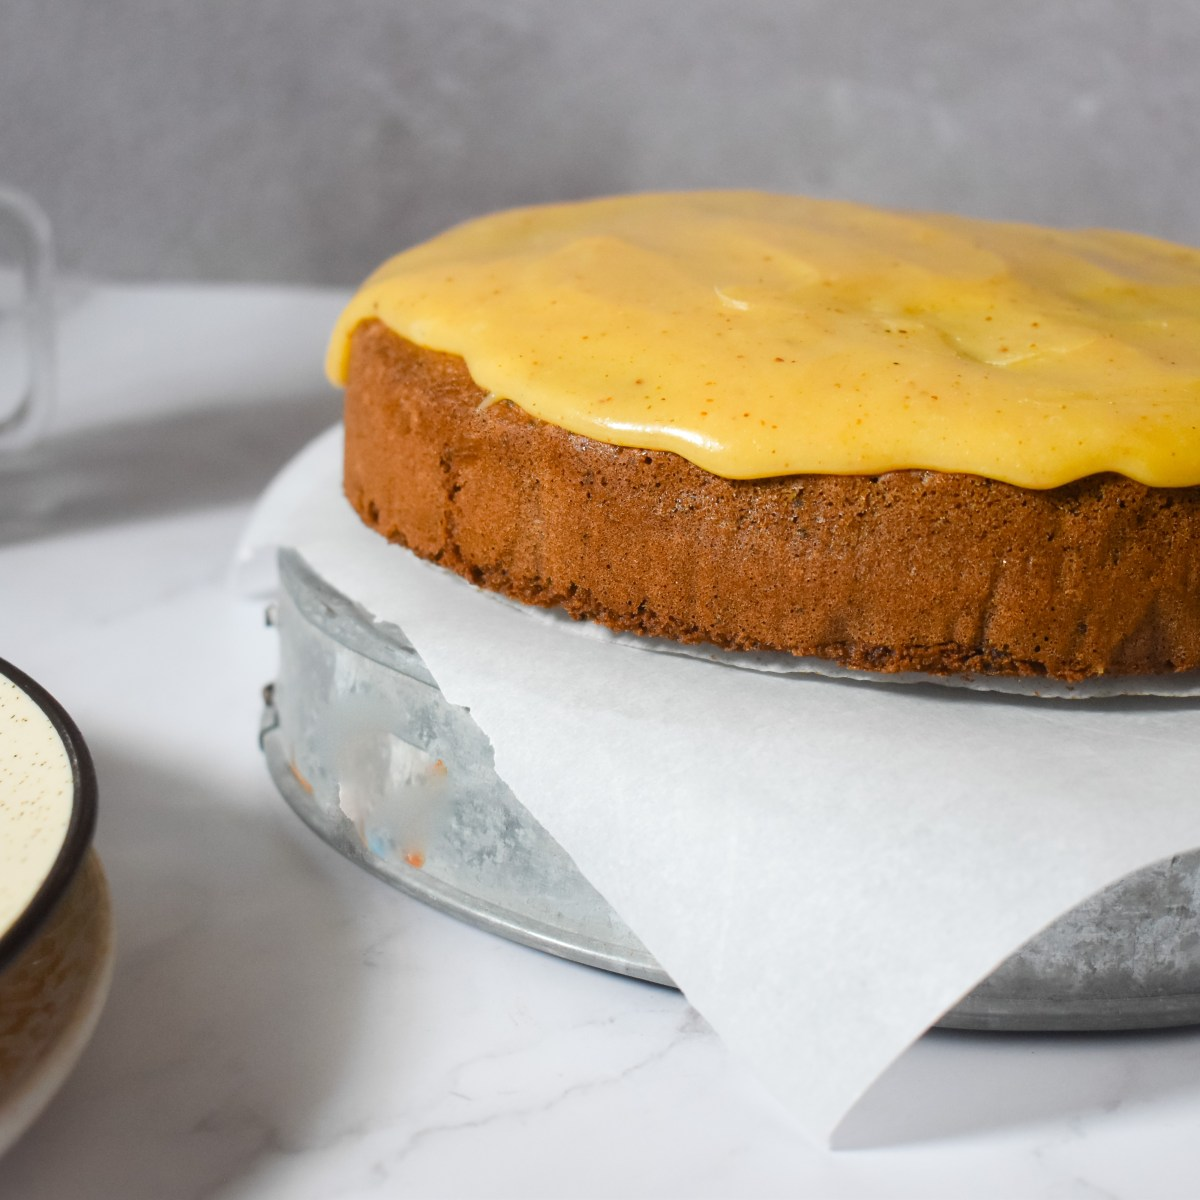 Caramel Cake with Whipped Caramel Frosting - Parveenskitchen.com